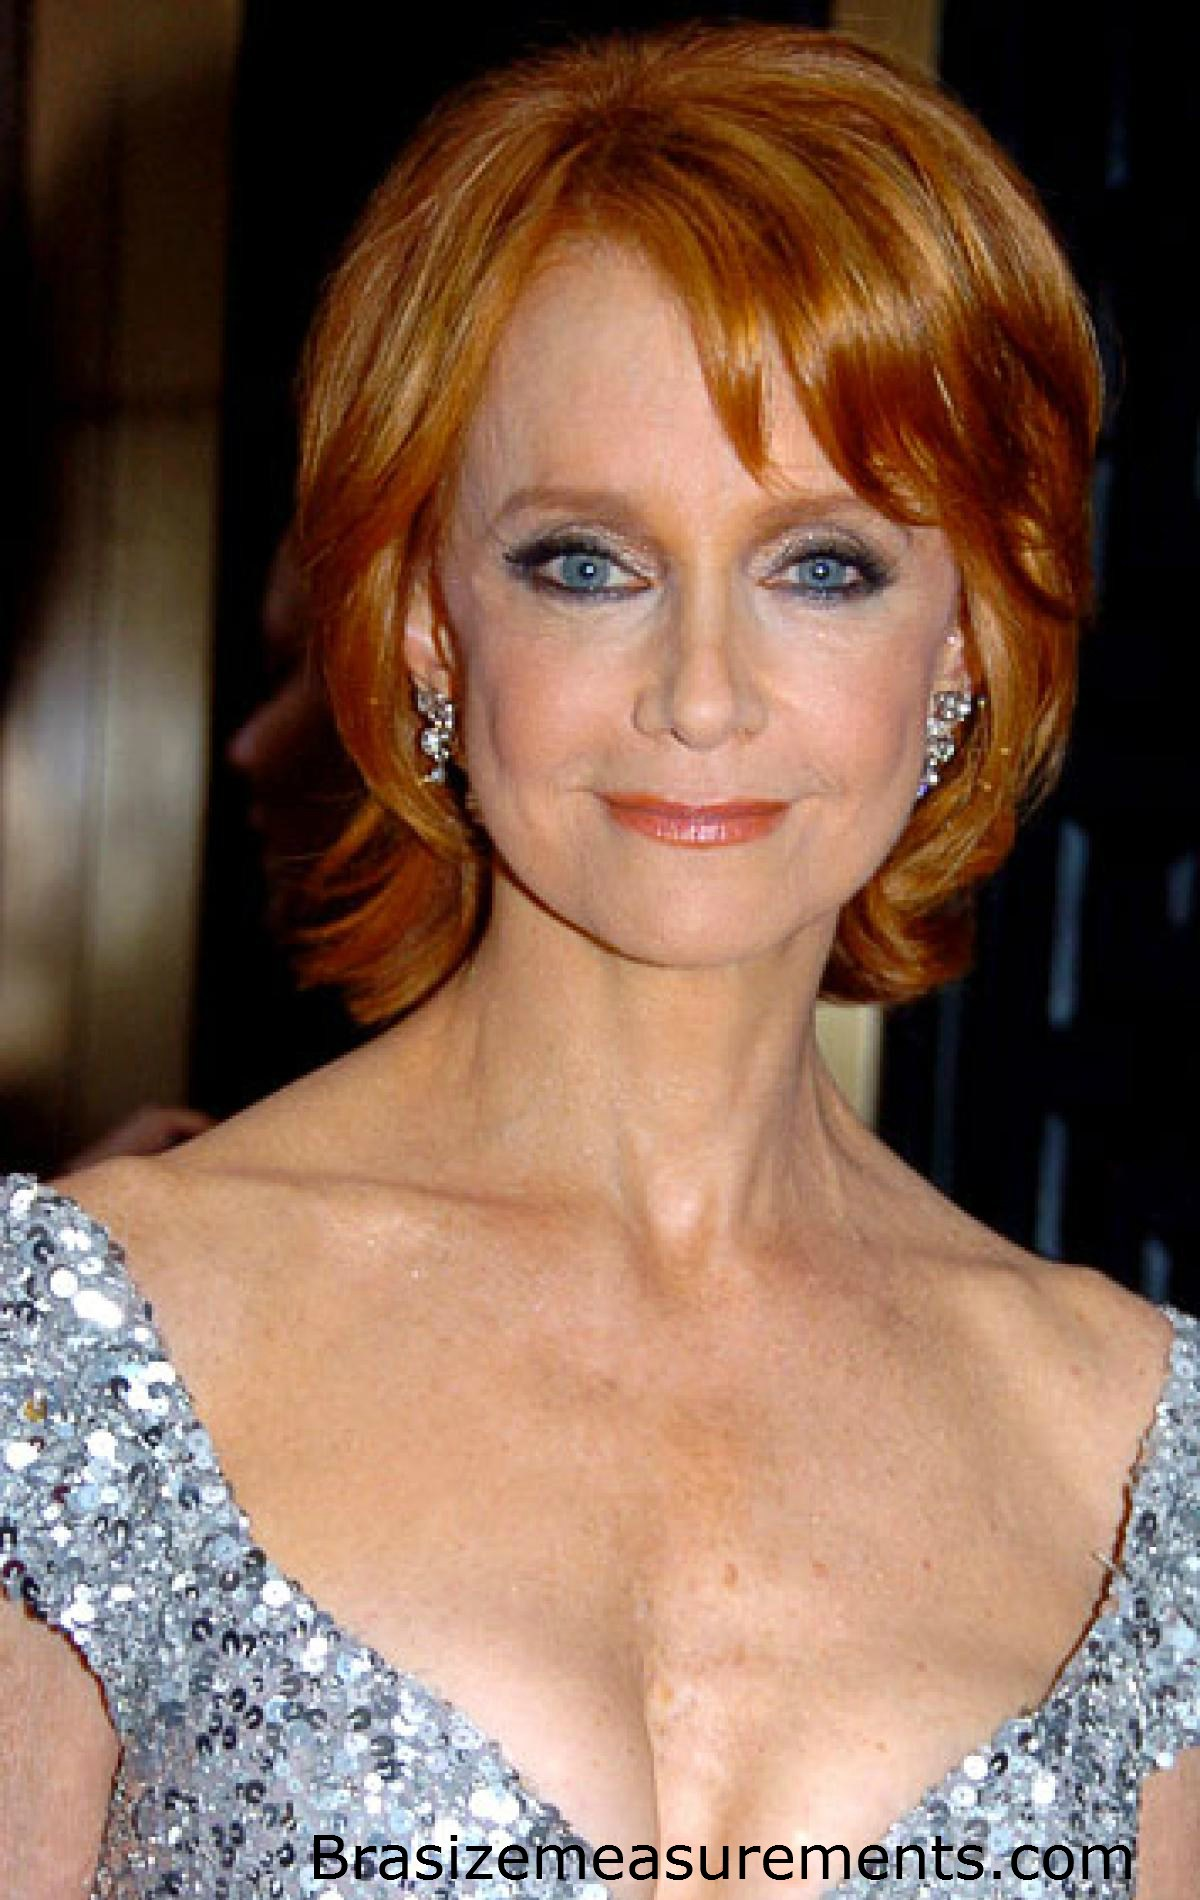 swoosie kurtz plastic surgery photo - 1